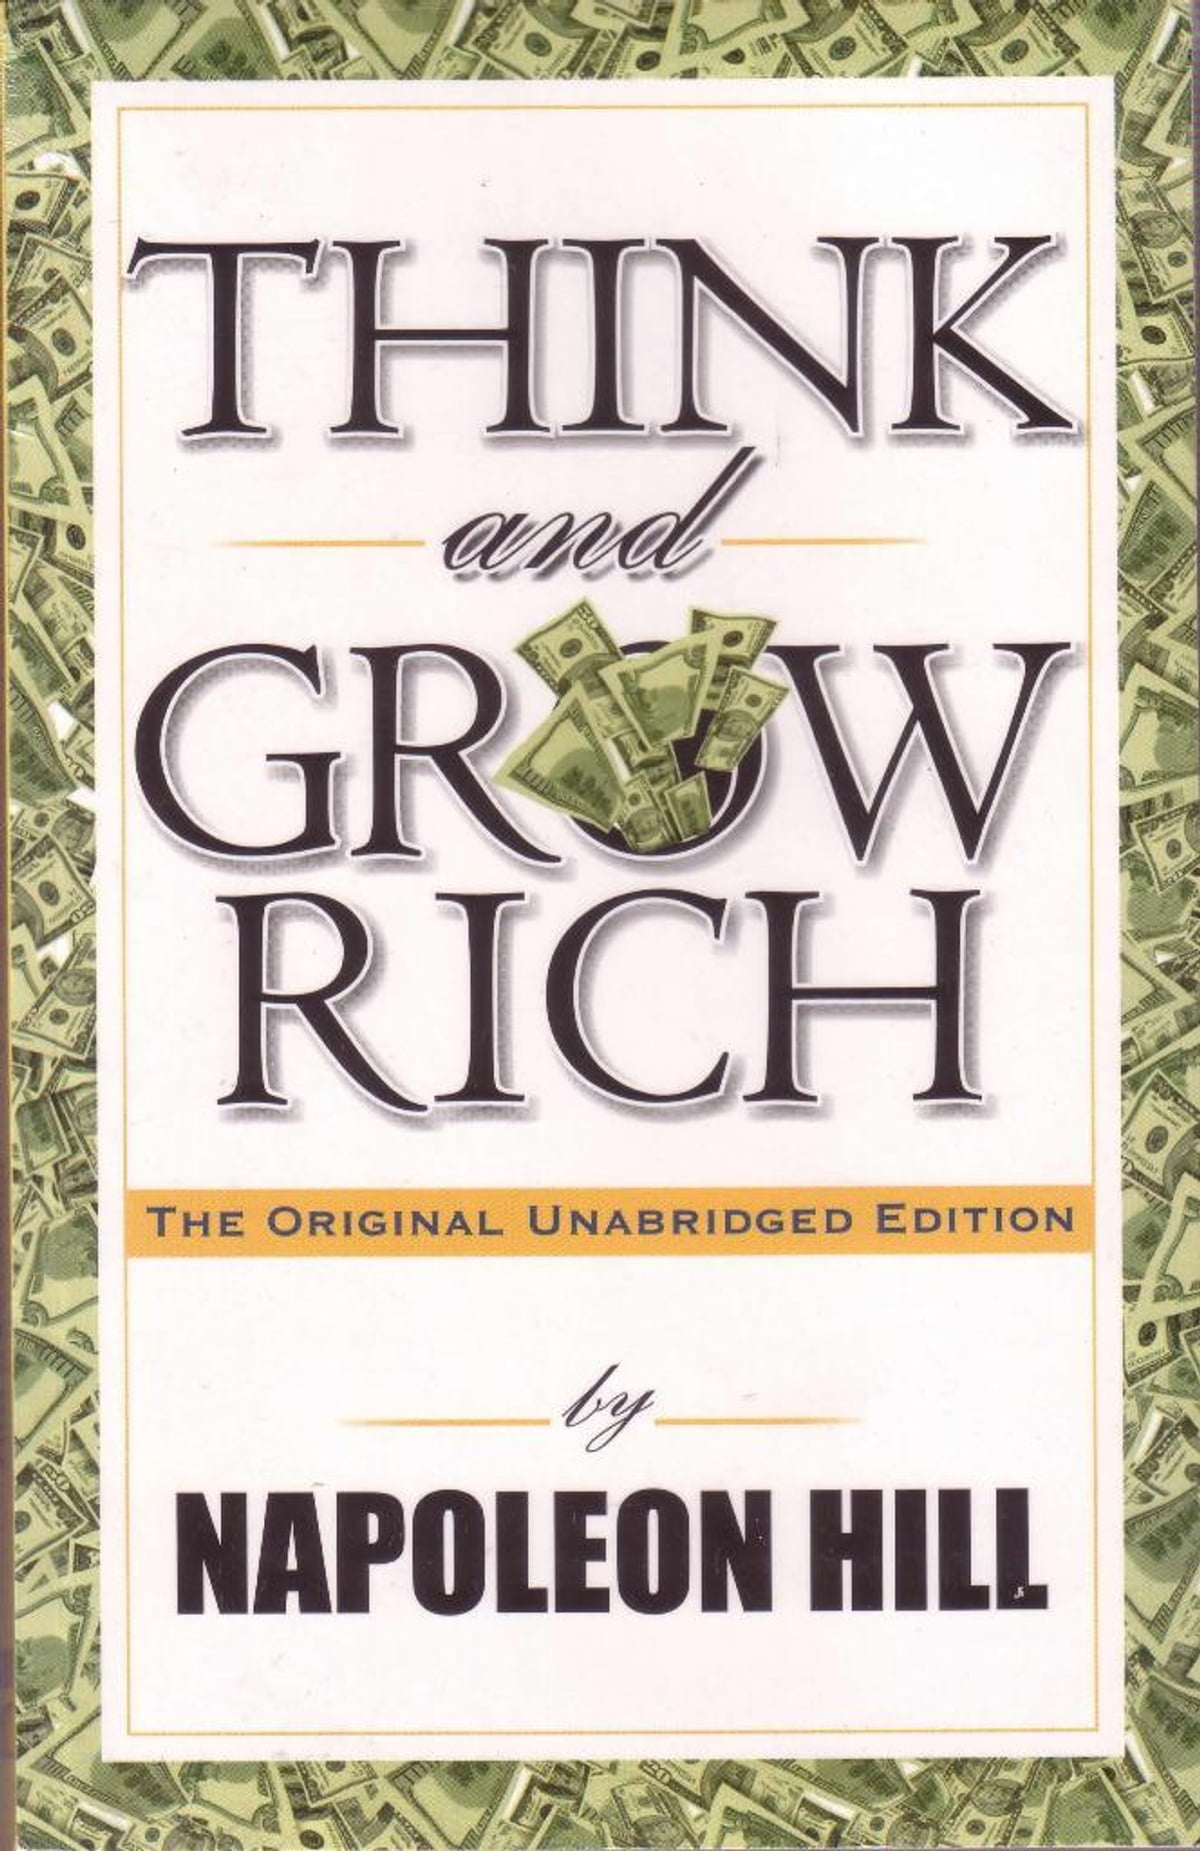 THINK AND GROW RICH: THE ORIGINAL EBOOK | NAPOLEON HILL ...